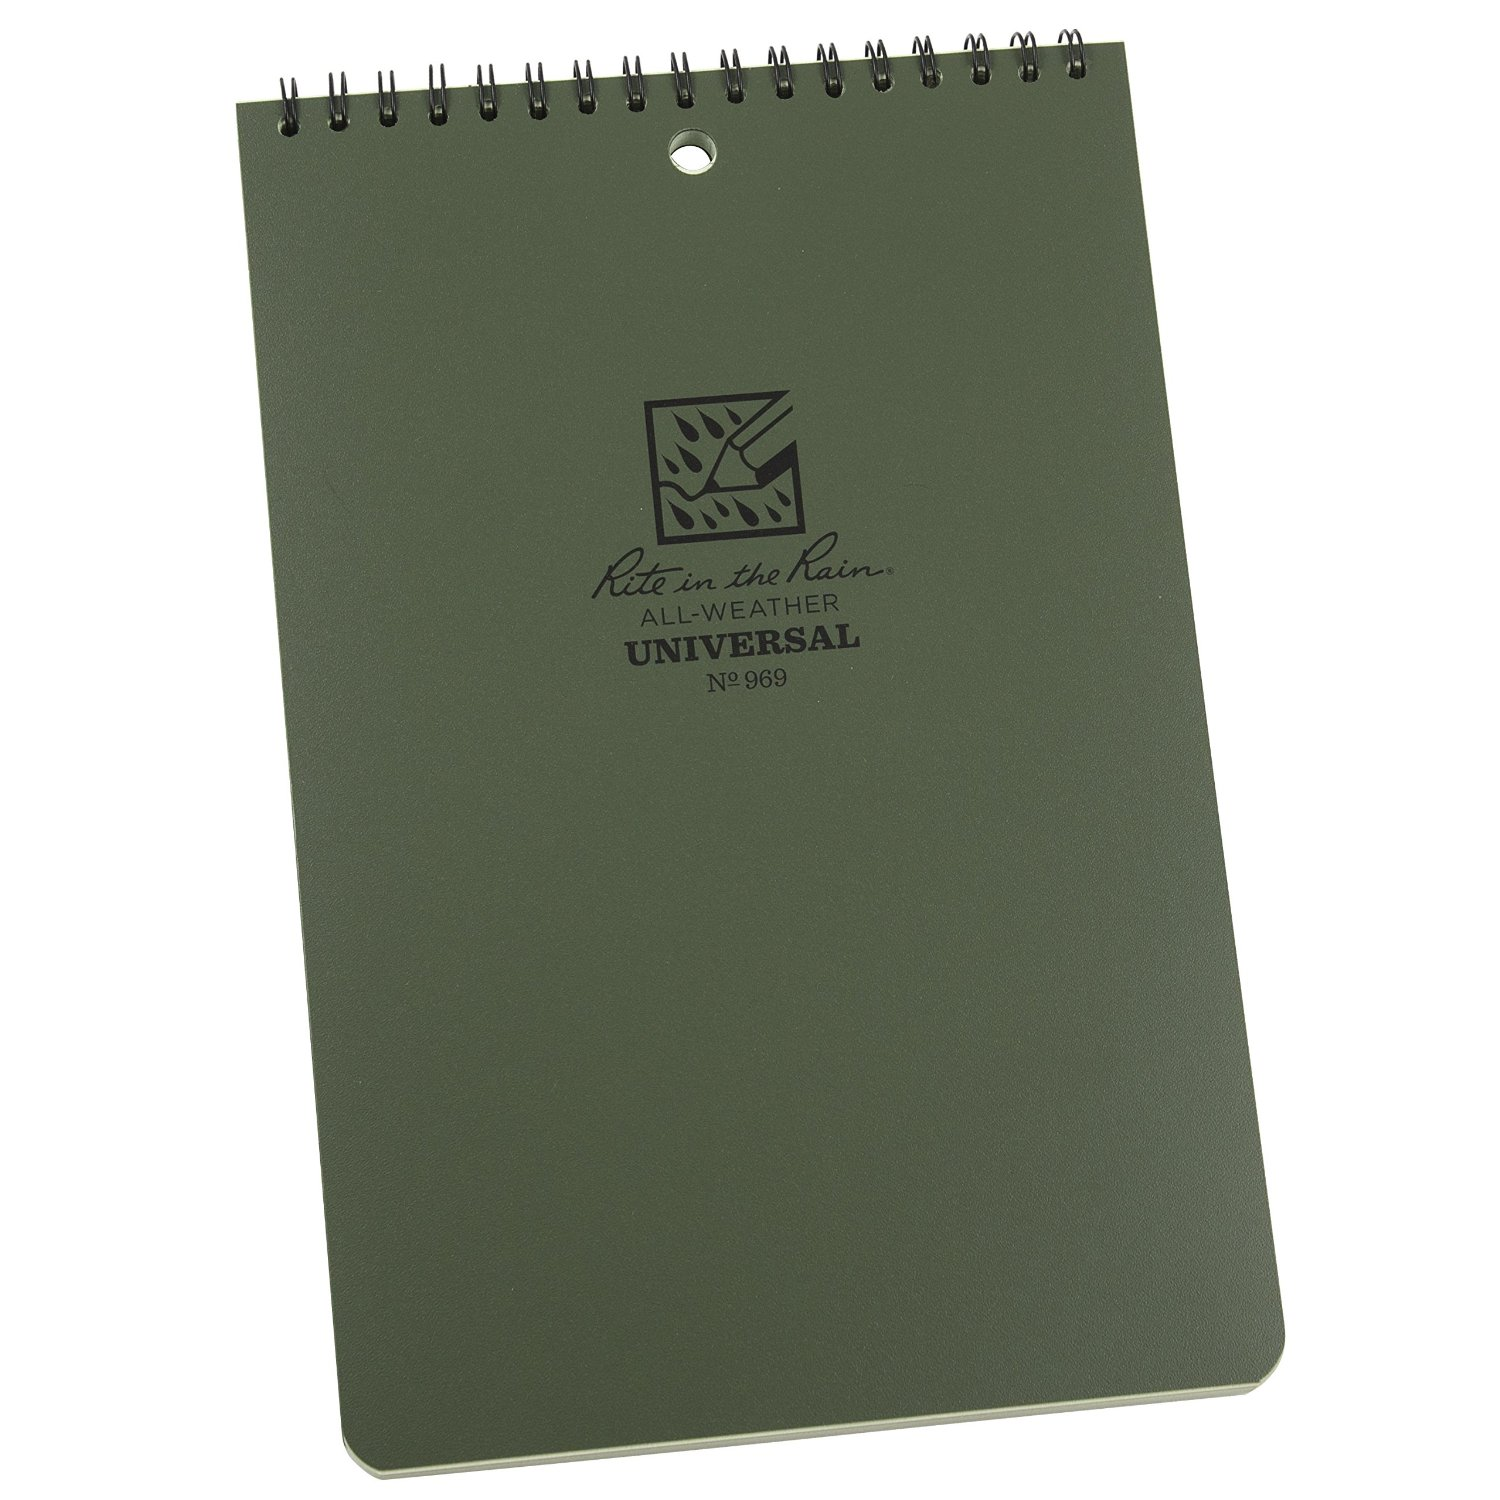 """Rite in the Rain All-Weather 6"""" x 9"""" Top-Spiral Notebook, Green Cover, Universal Pattern (No. 969)"""